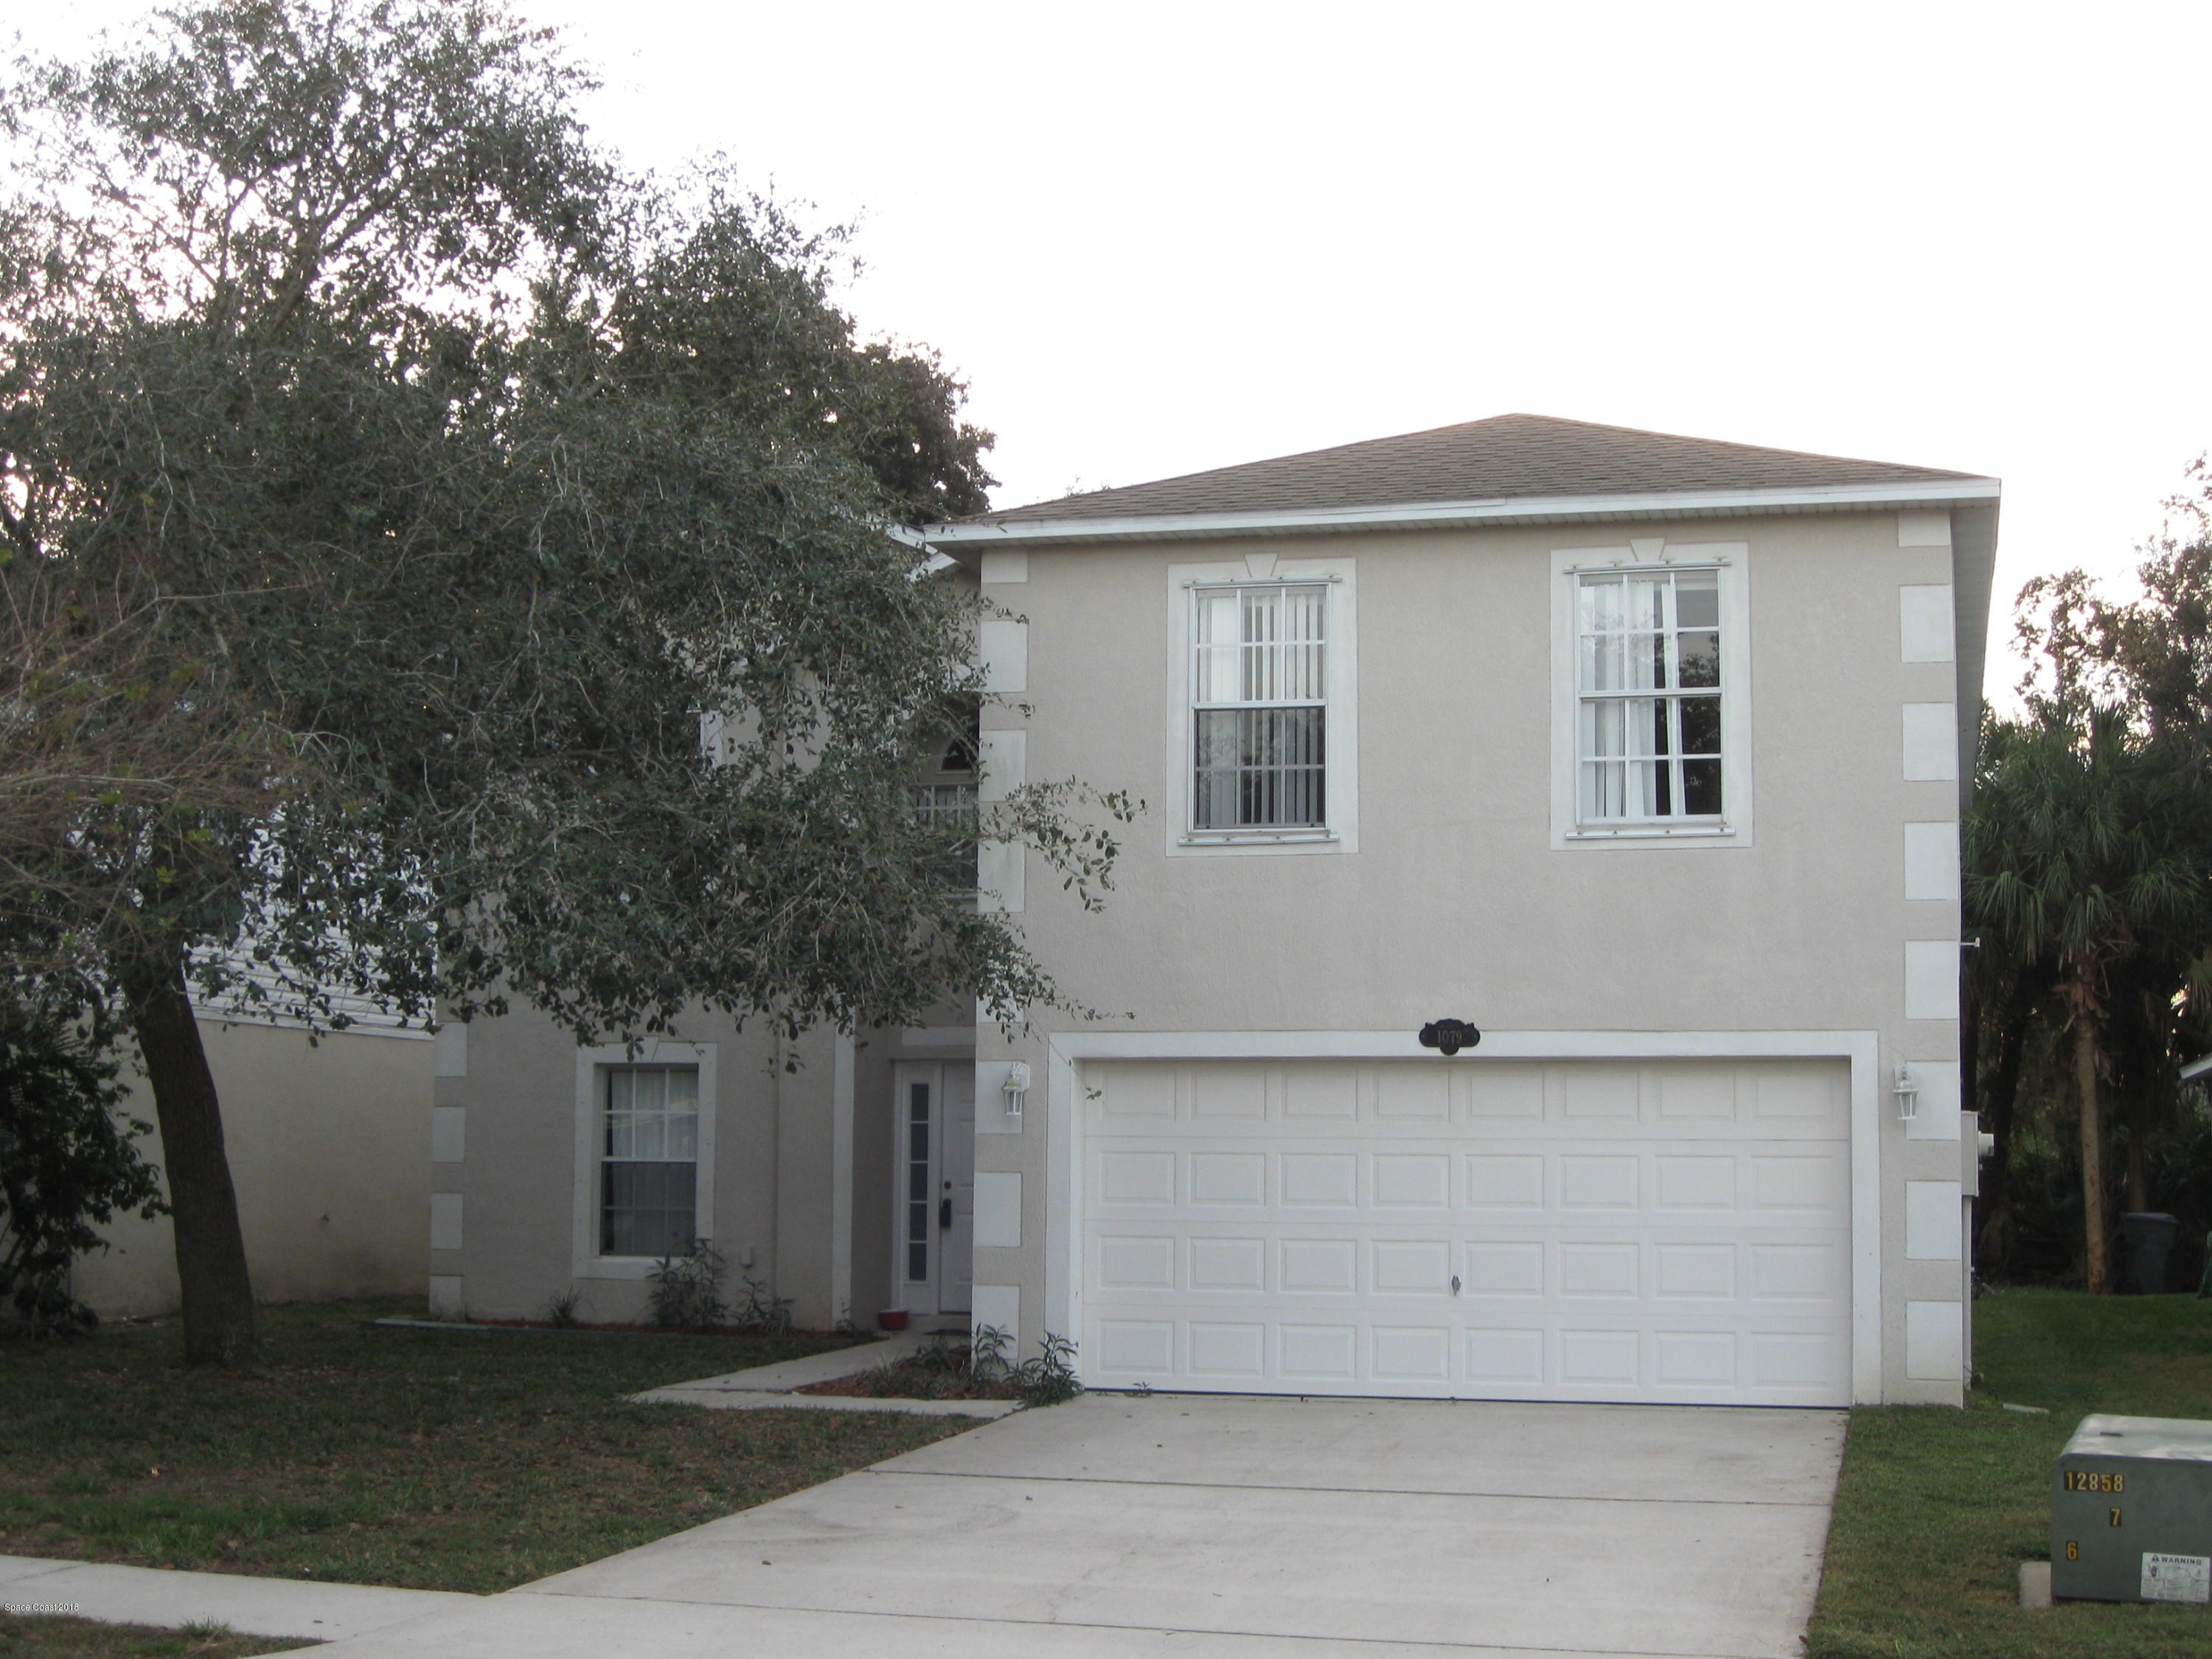 Single Family Home for Rent at 1079 Macon 1079 Macon Titusville, Florida 32780 United States